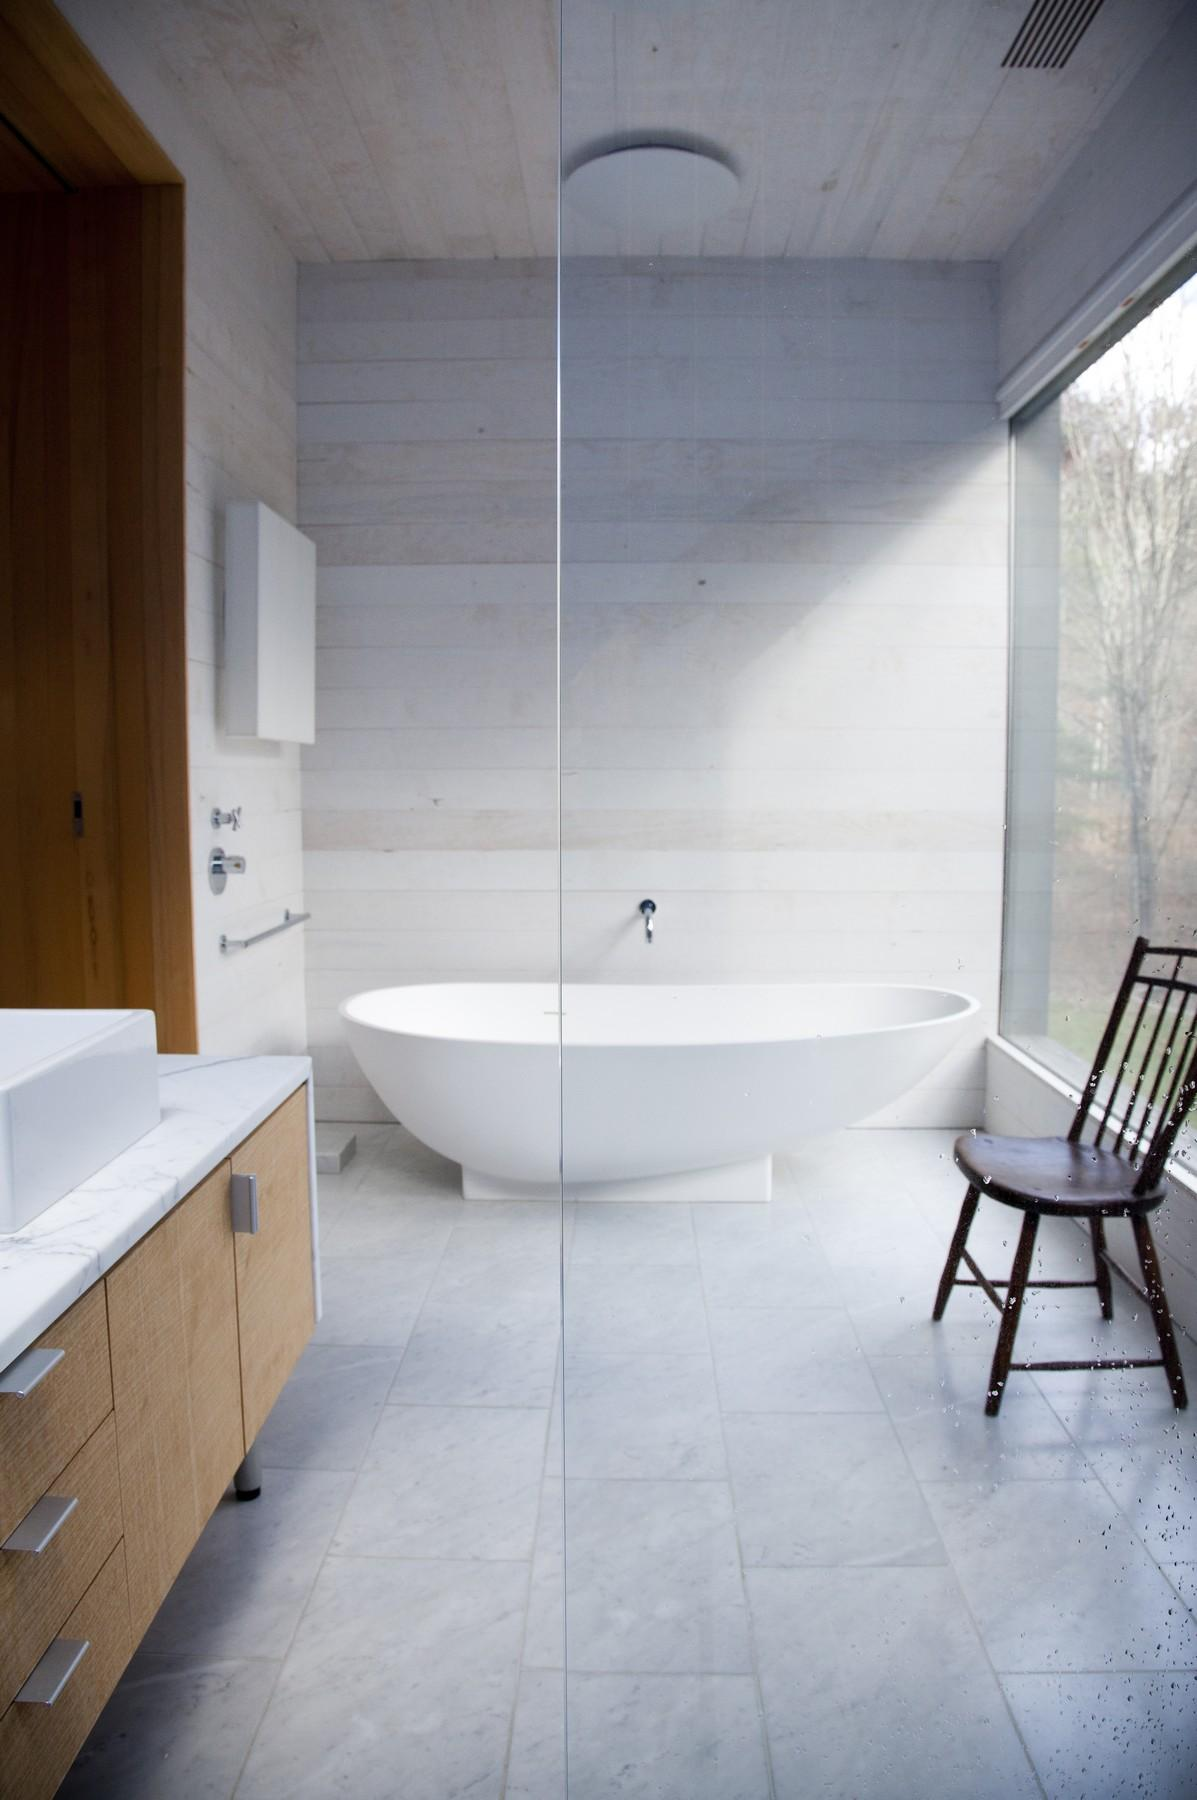 Bathroom, Rural Retreat in Bantam, Connecticut